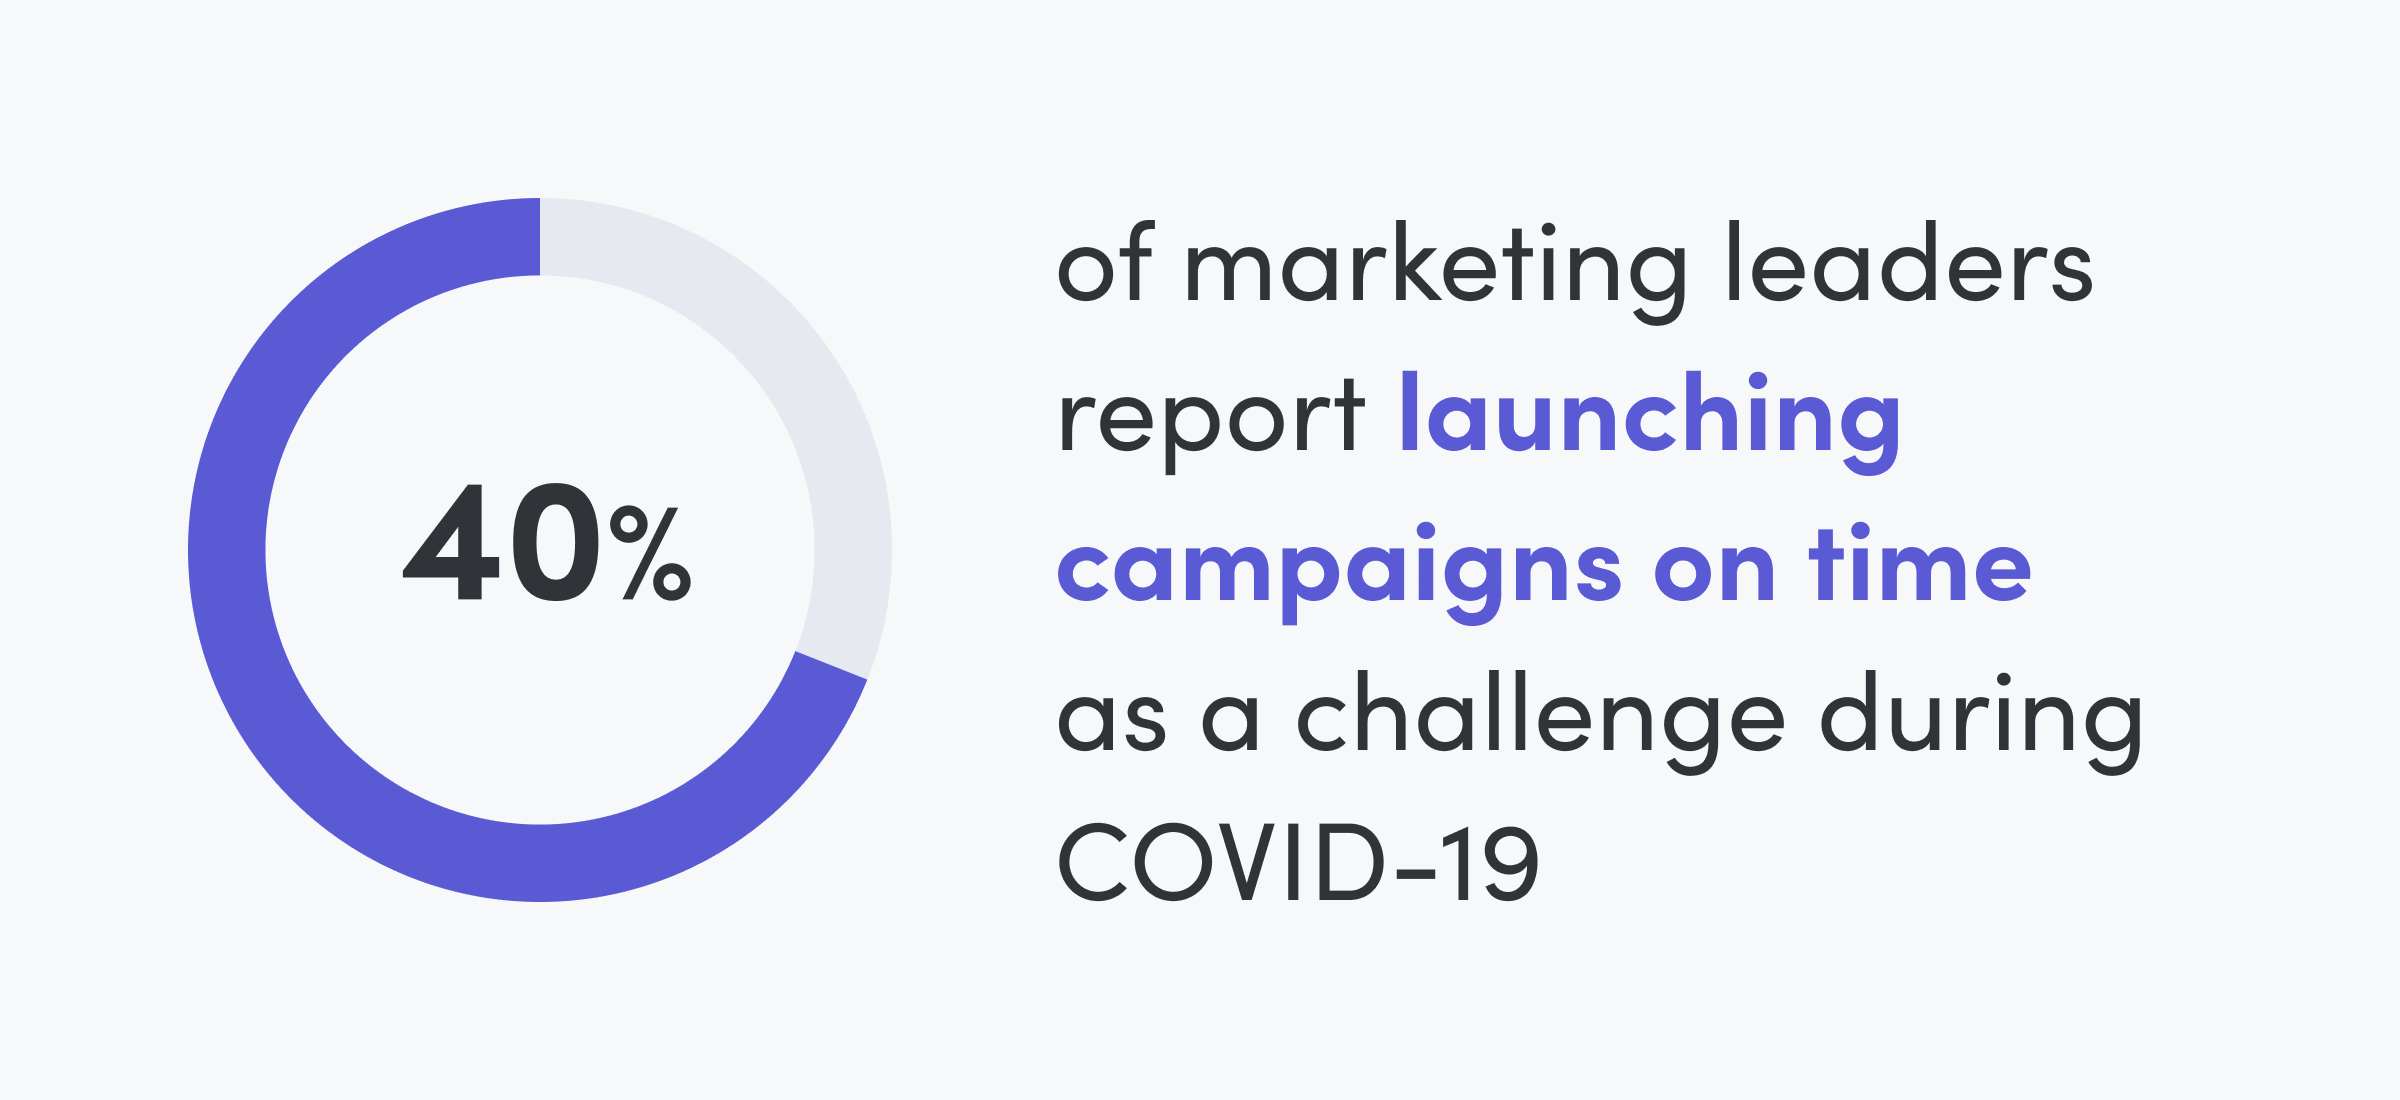 Crisis marketing: Launching campaigns on time